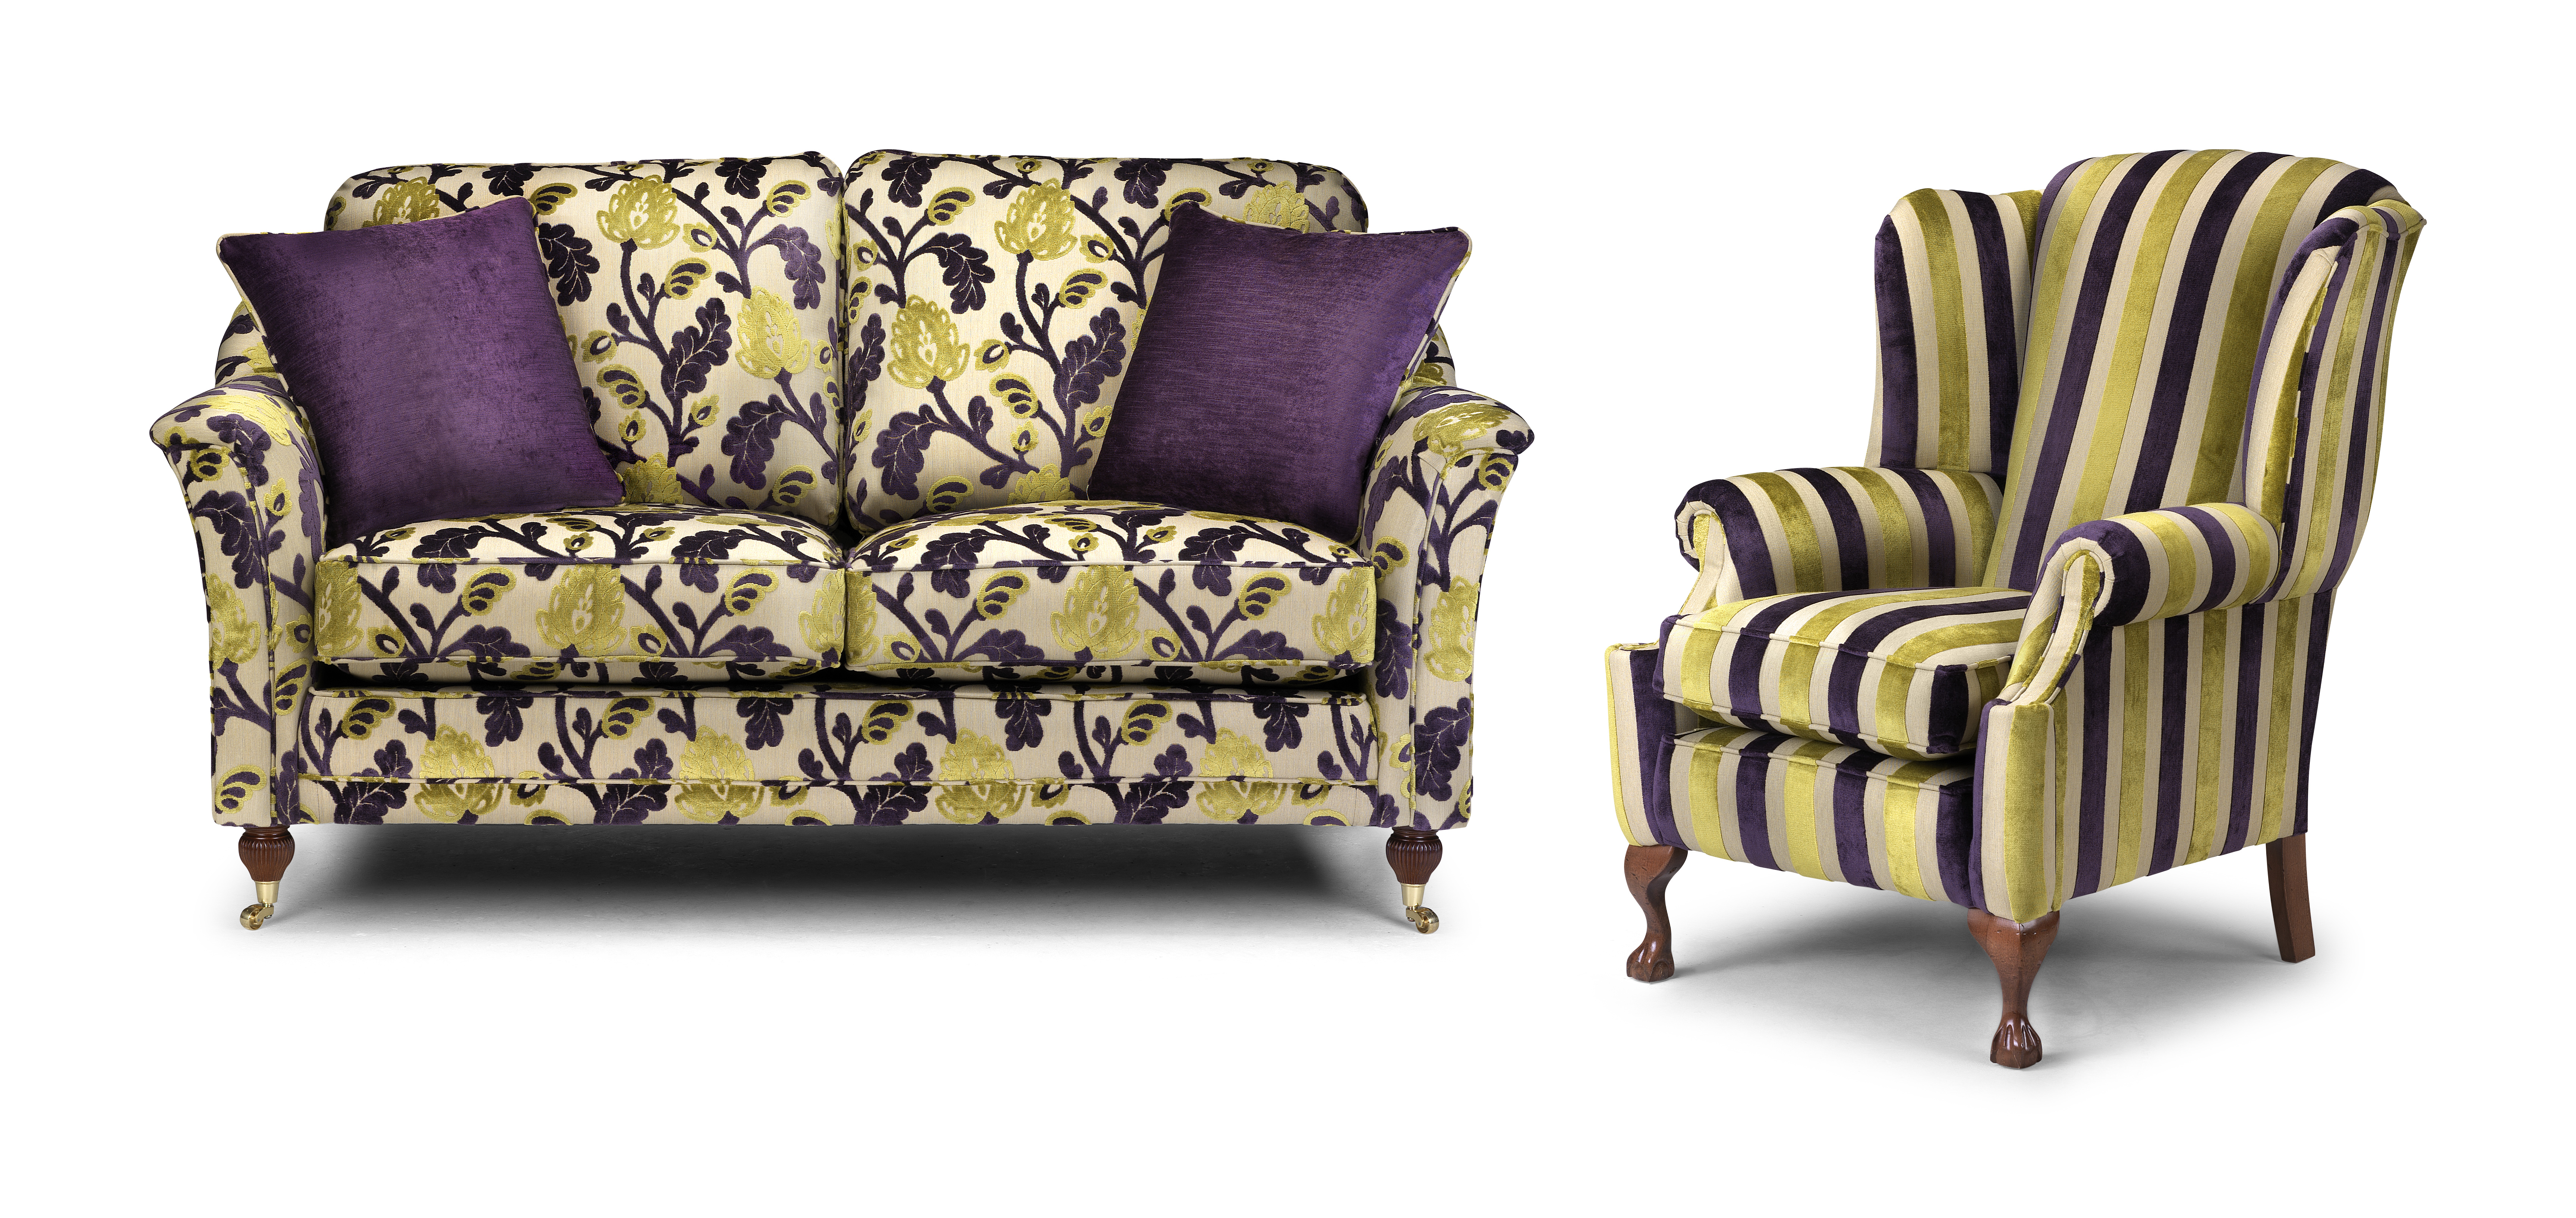 SOFAS MADE BY RALVERN GALLERY PHOTO COVERTEX FABRICS